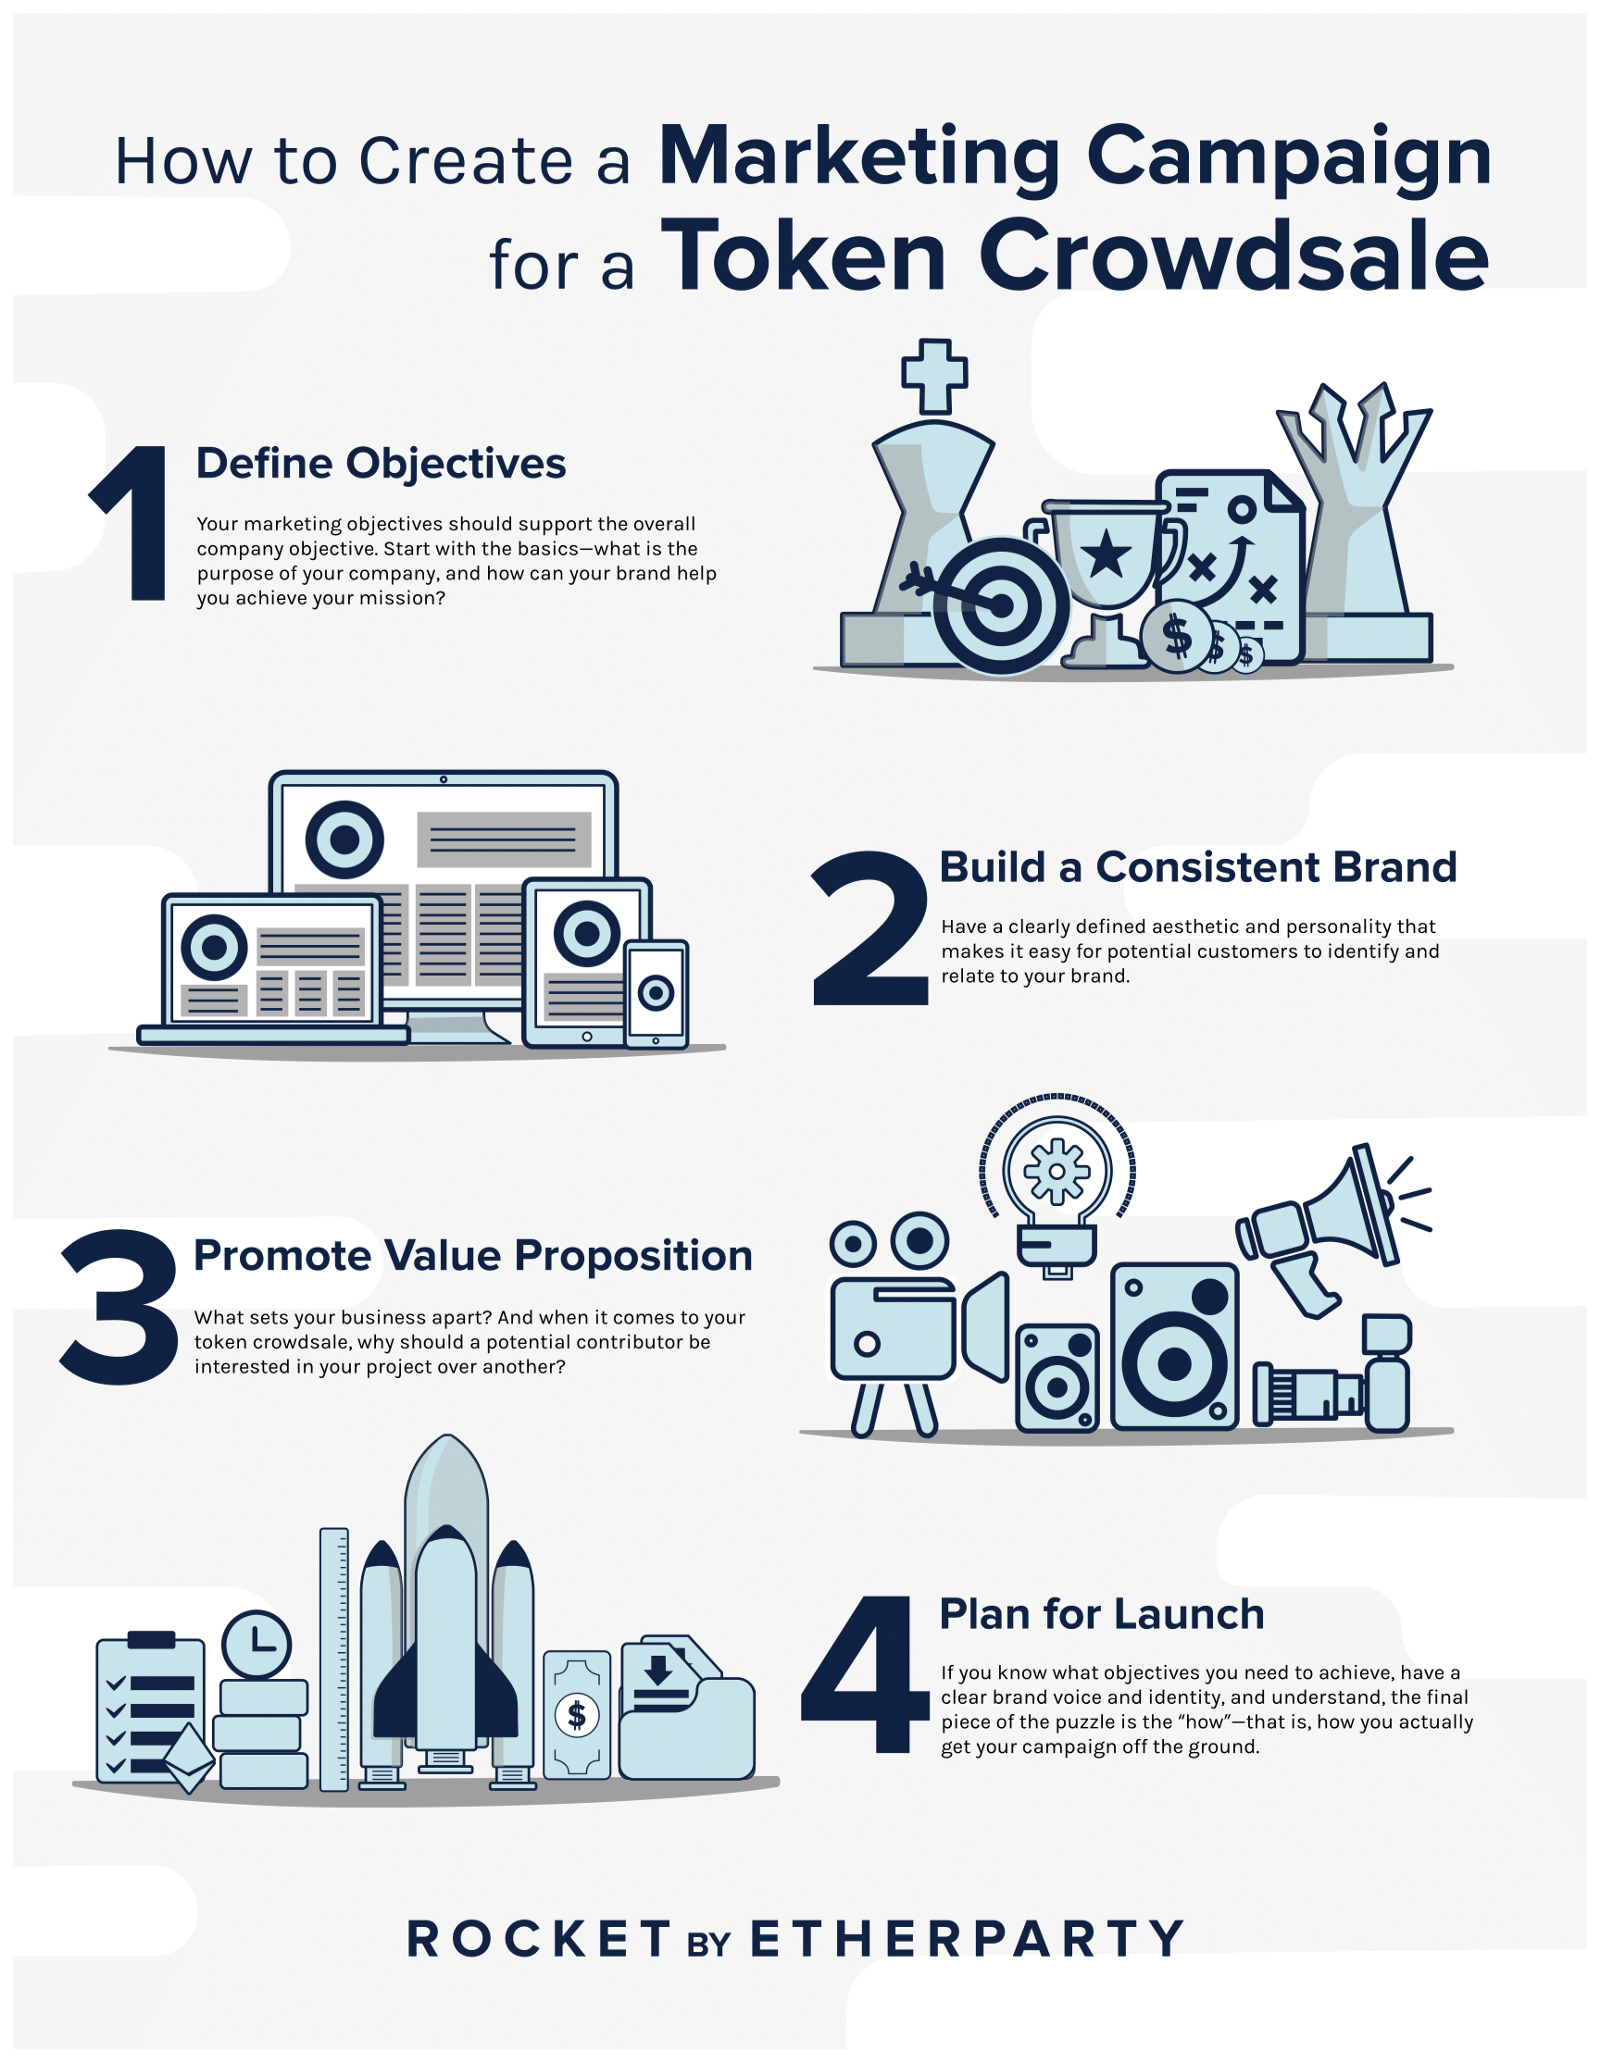 How Do You Create A Marketing Plan | Essential Elements To A Marketing Campaign For Token Crowdsales